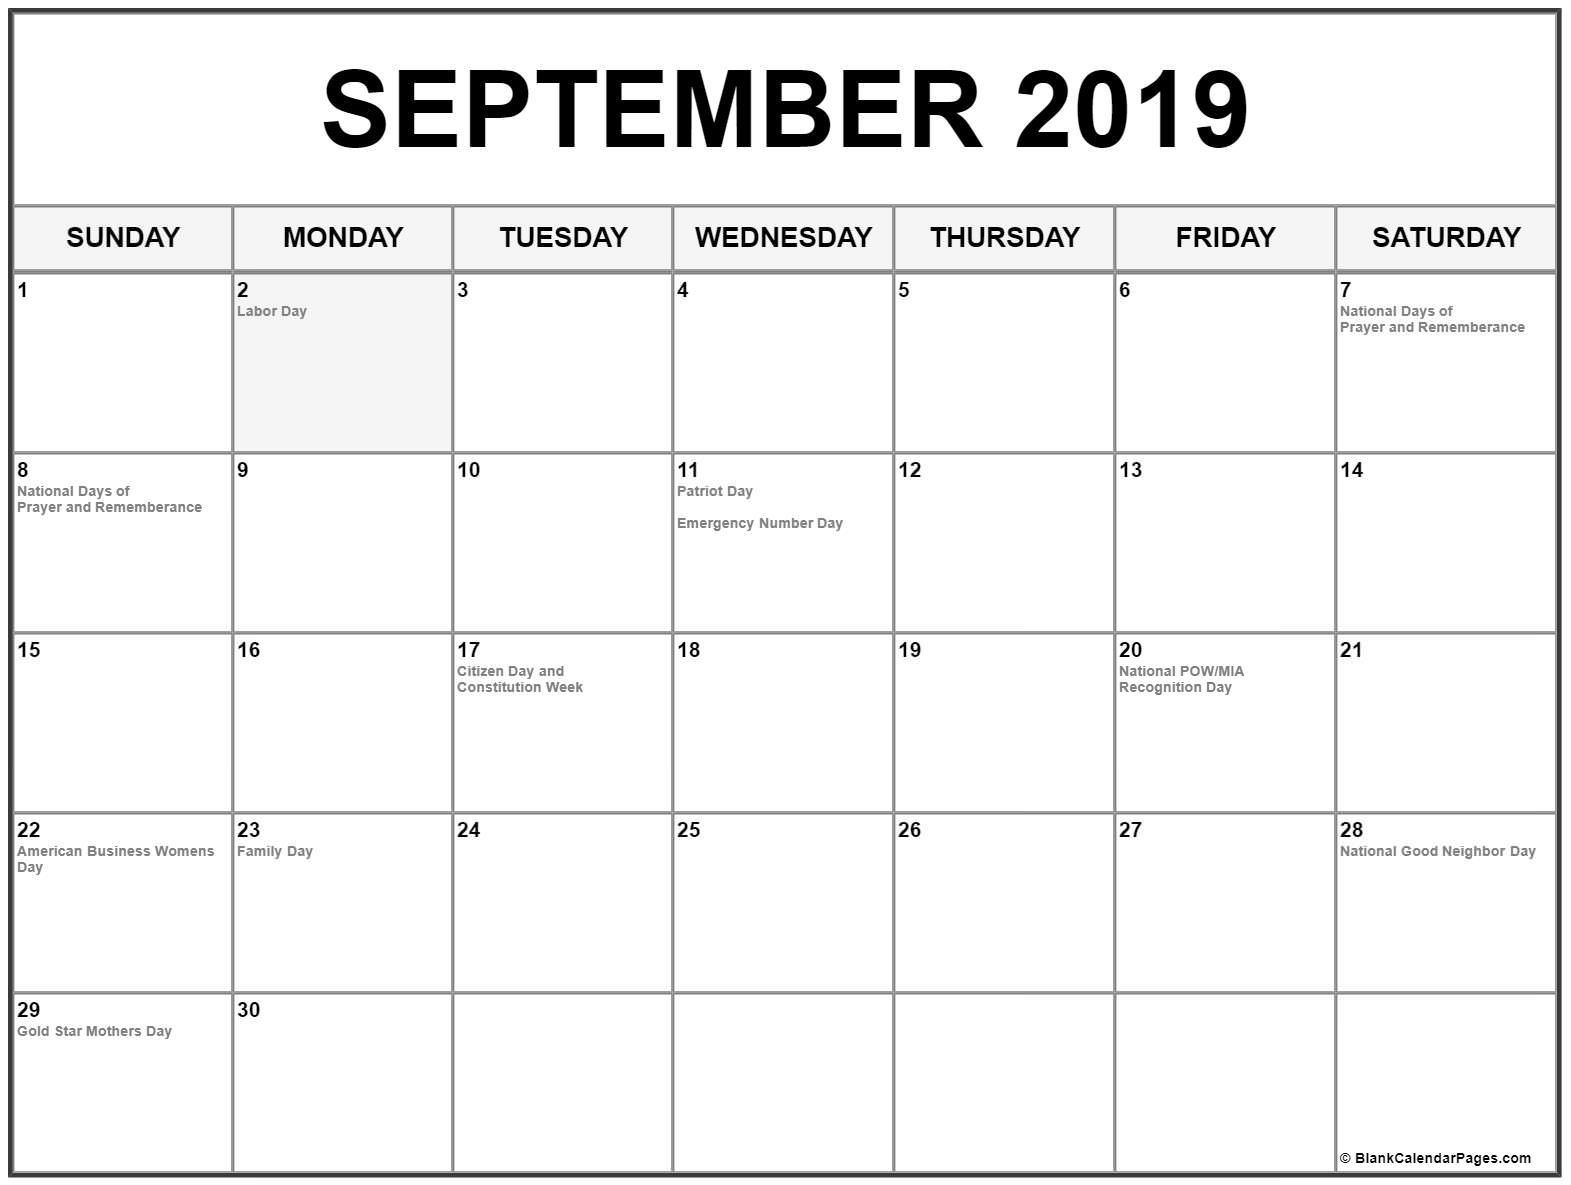 September 2019 Calendar Word #sep #september2019